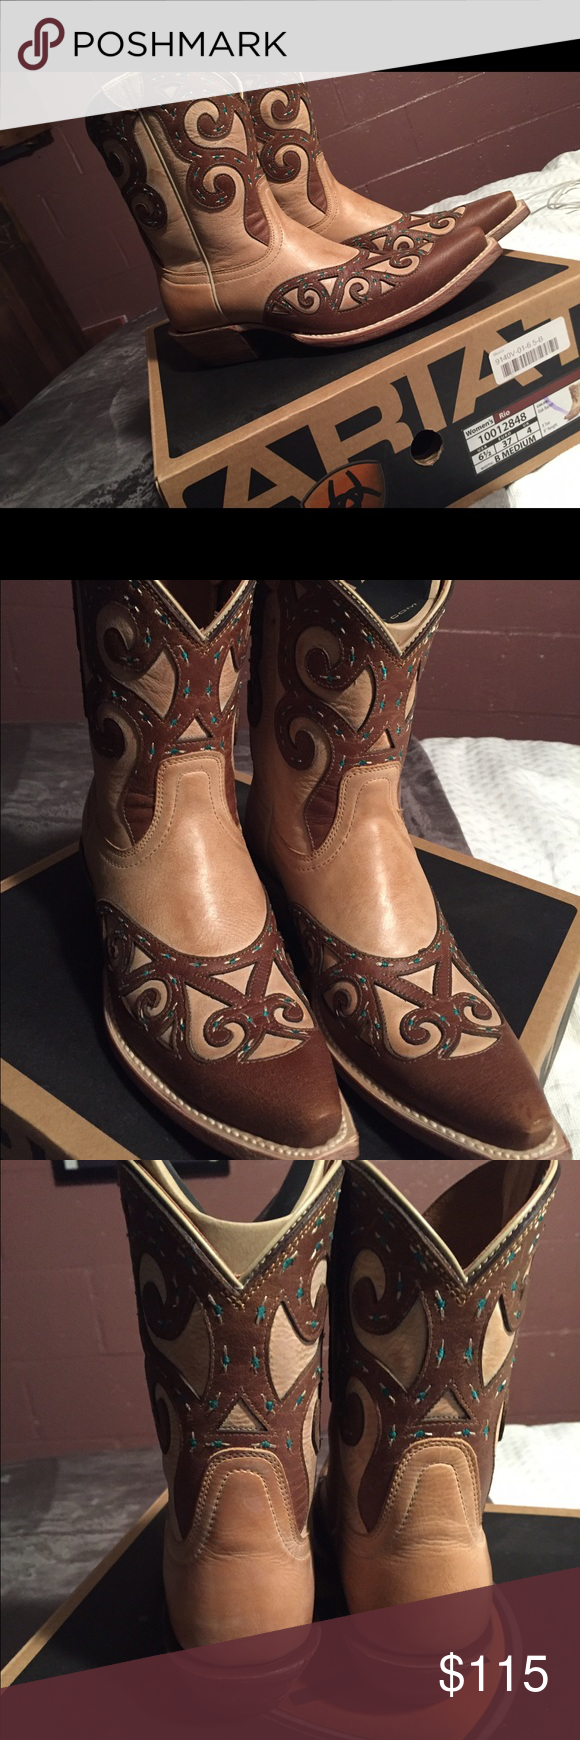 NWB Ariat Rio boots Gorgeous Ariat Rio boots, color oak brown with blue accent stitching throughout the boot. This boot has their ATS stability & cushioning comfort sole system. Brand new, smoke free home! Ariat Shoes Ankle Boots & Booties